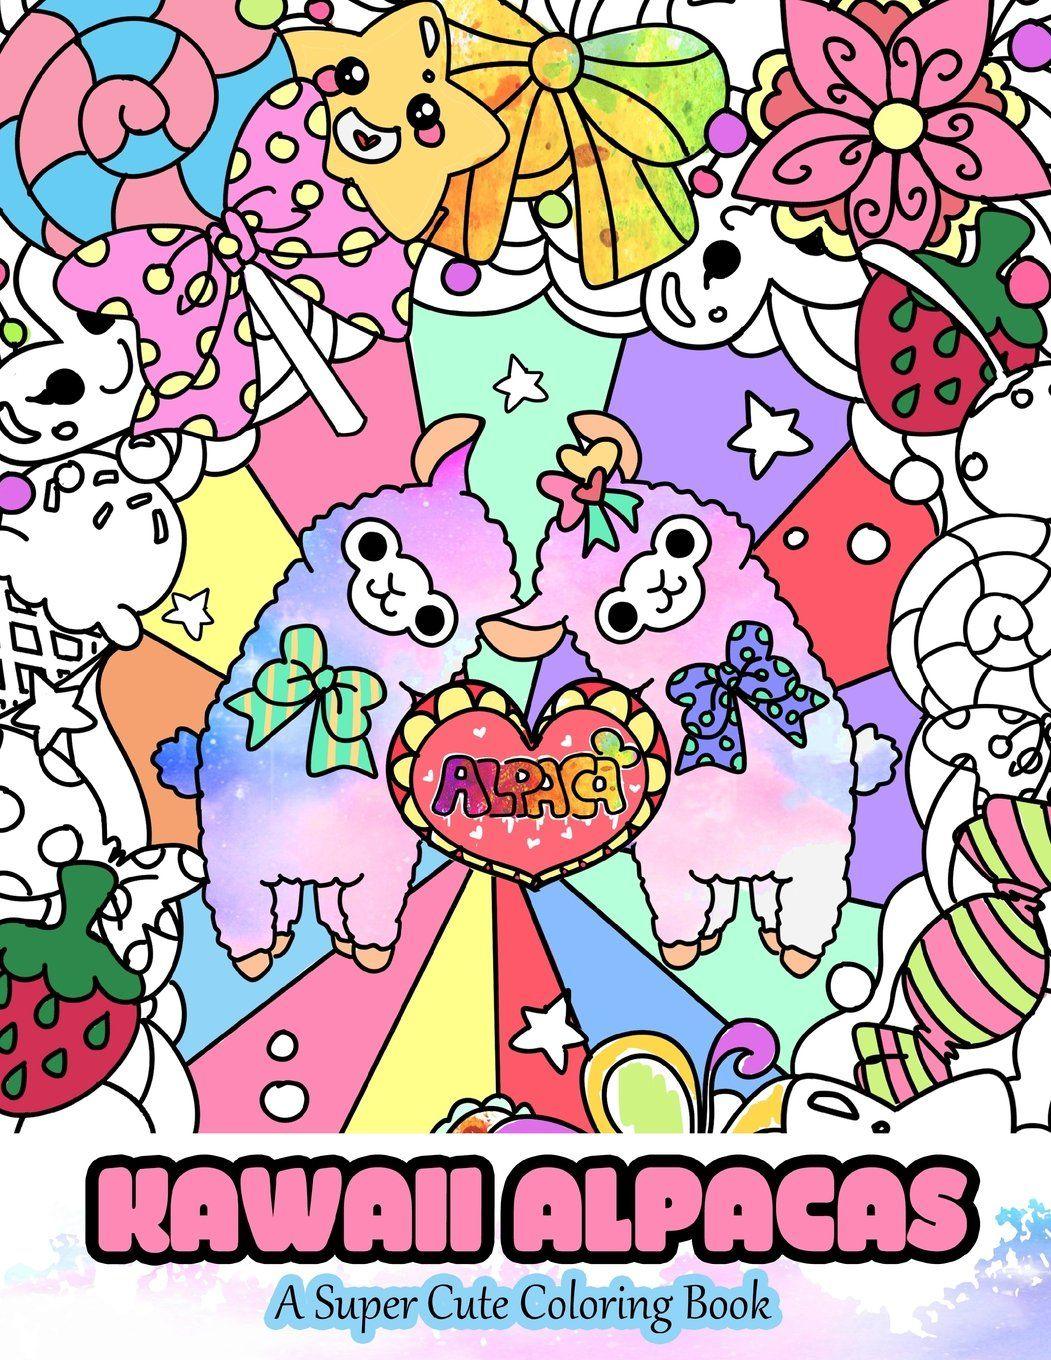 Kawaii Alpacas. Mindful Coloring Books http://amzn.to/2iiAp6u Libro ...